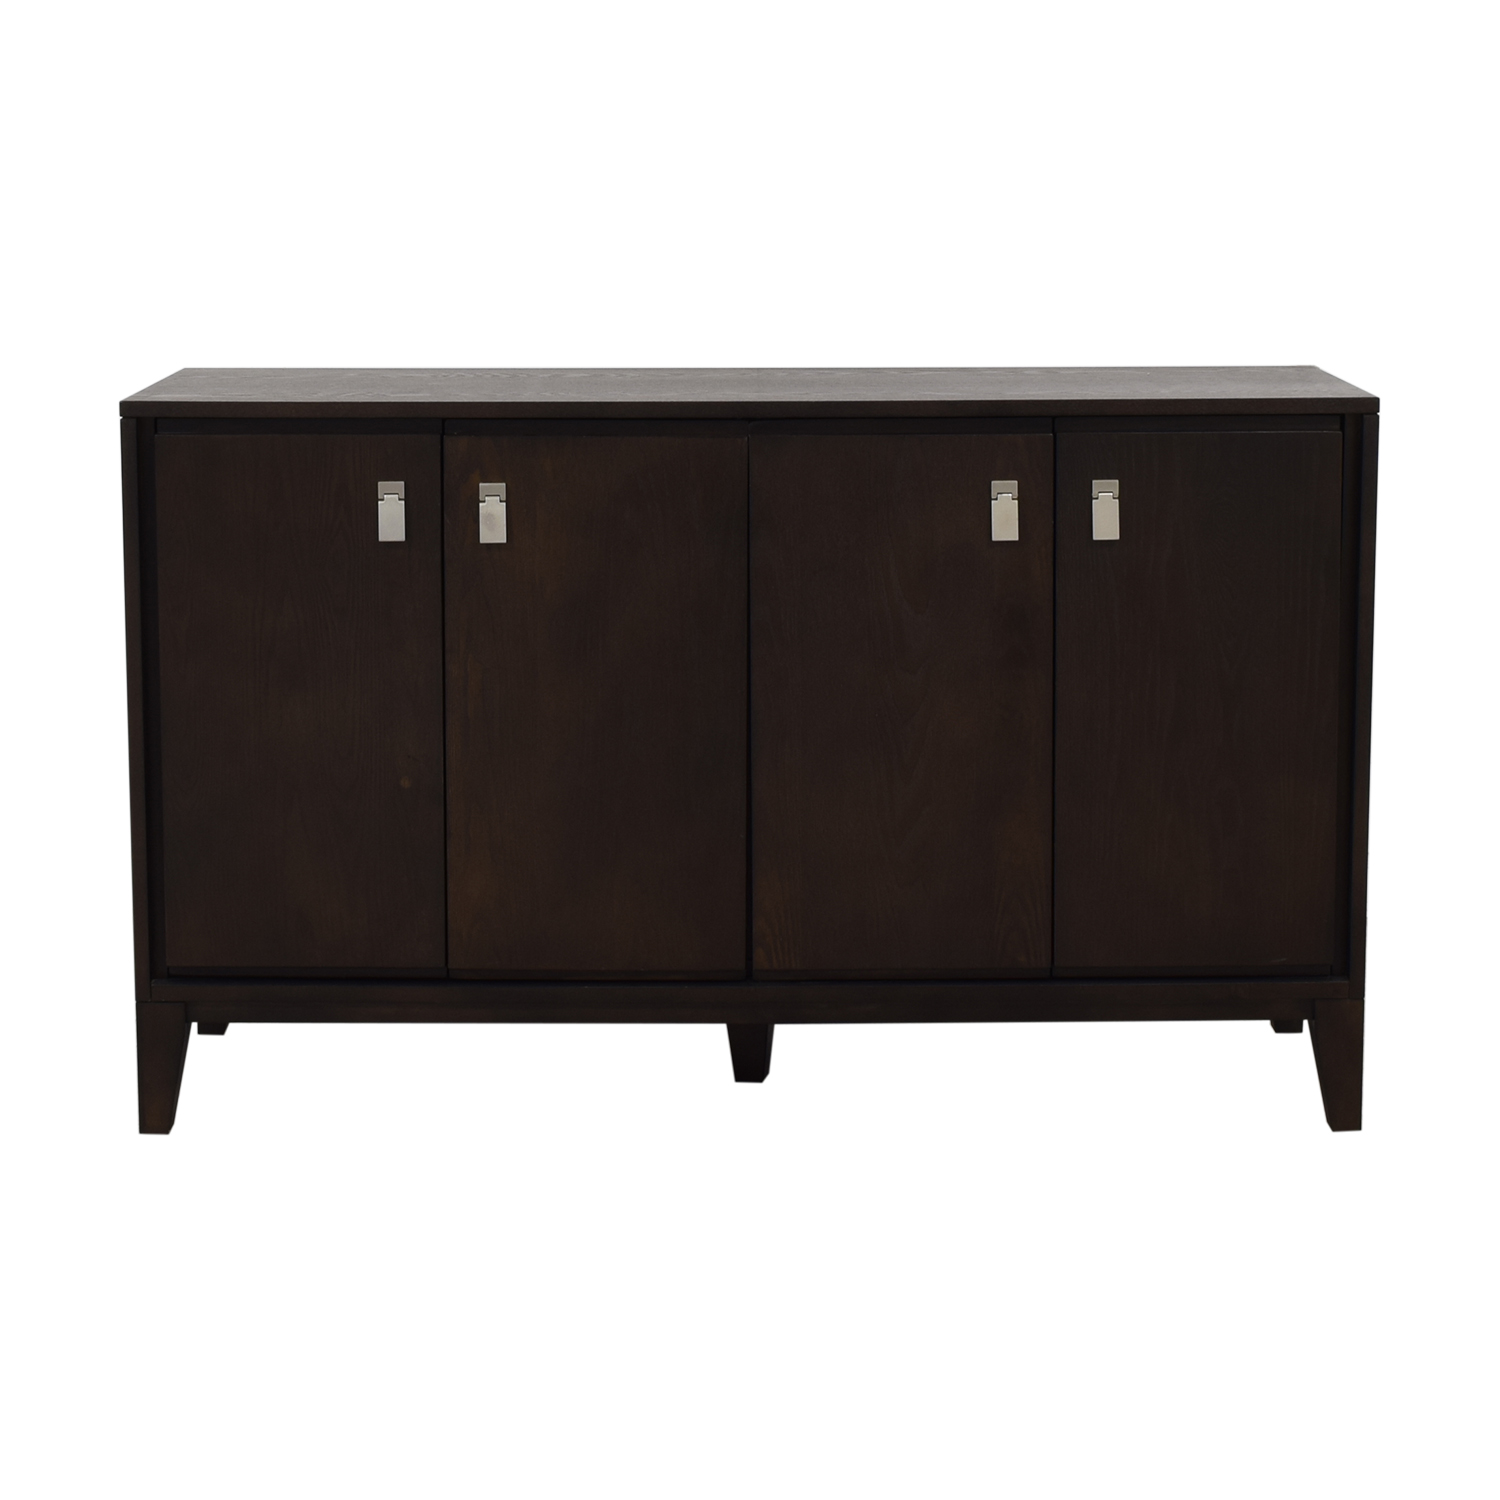 West Elm West Elm Wood Media Console second hand